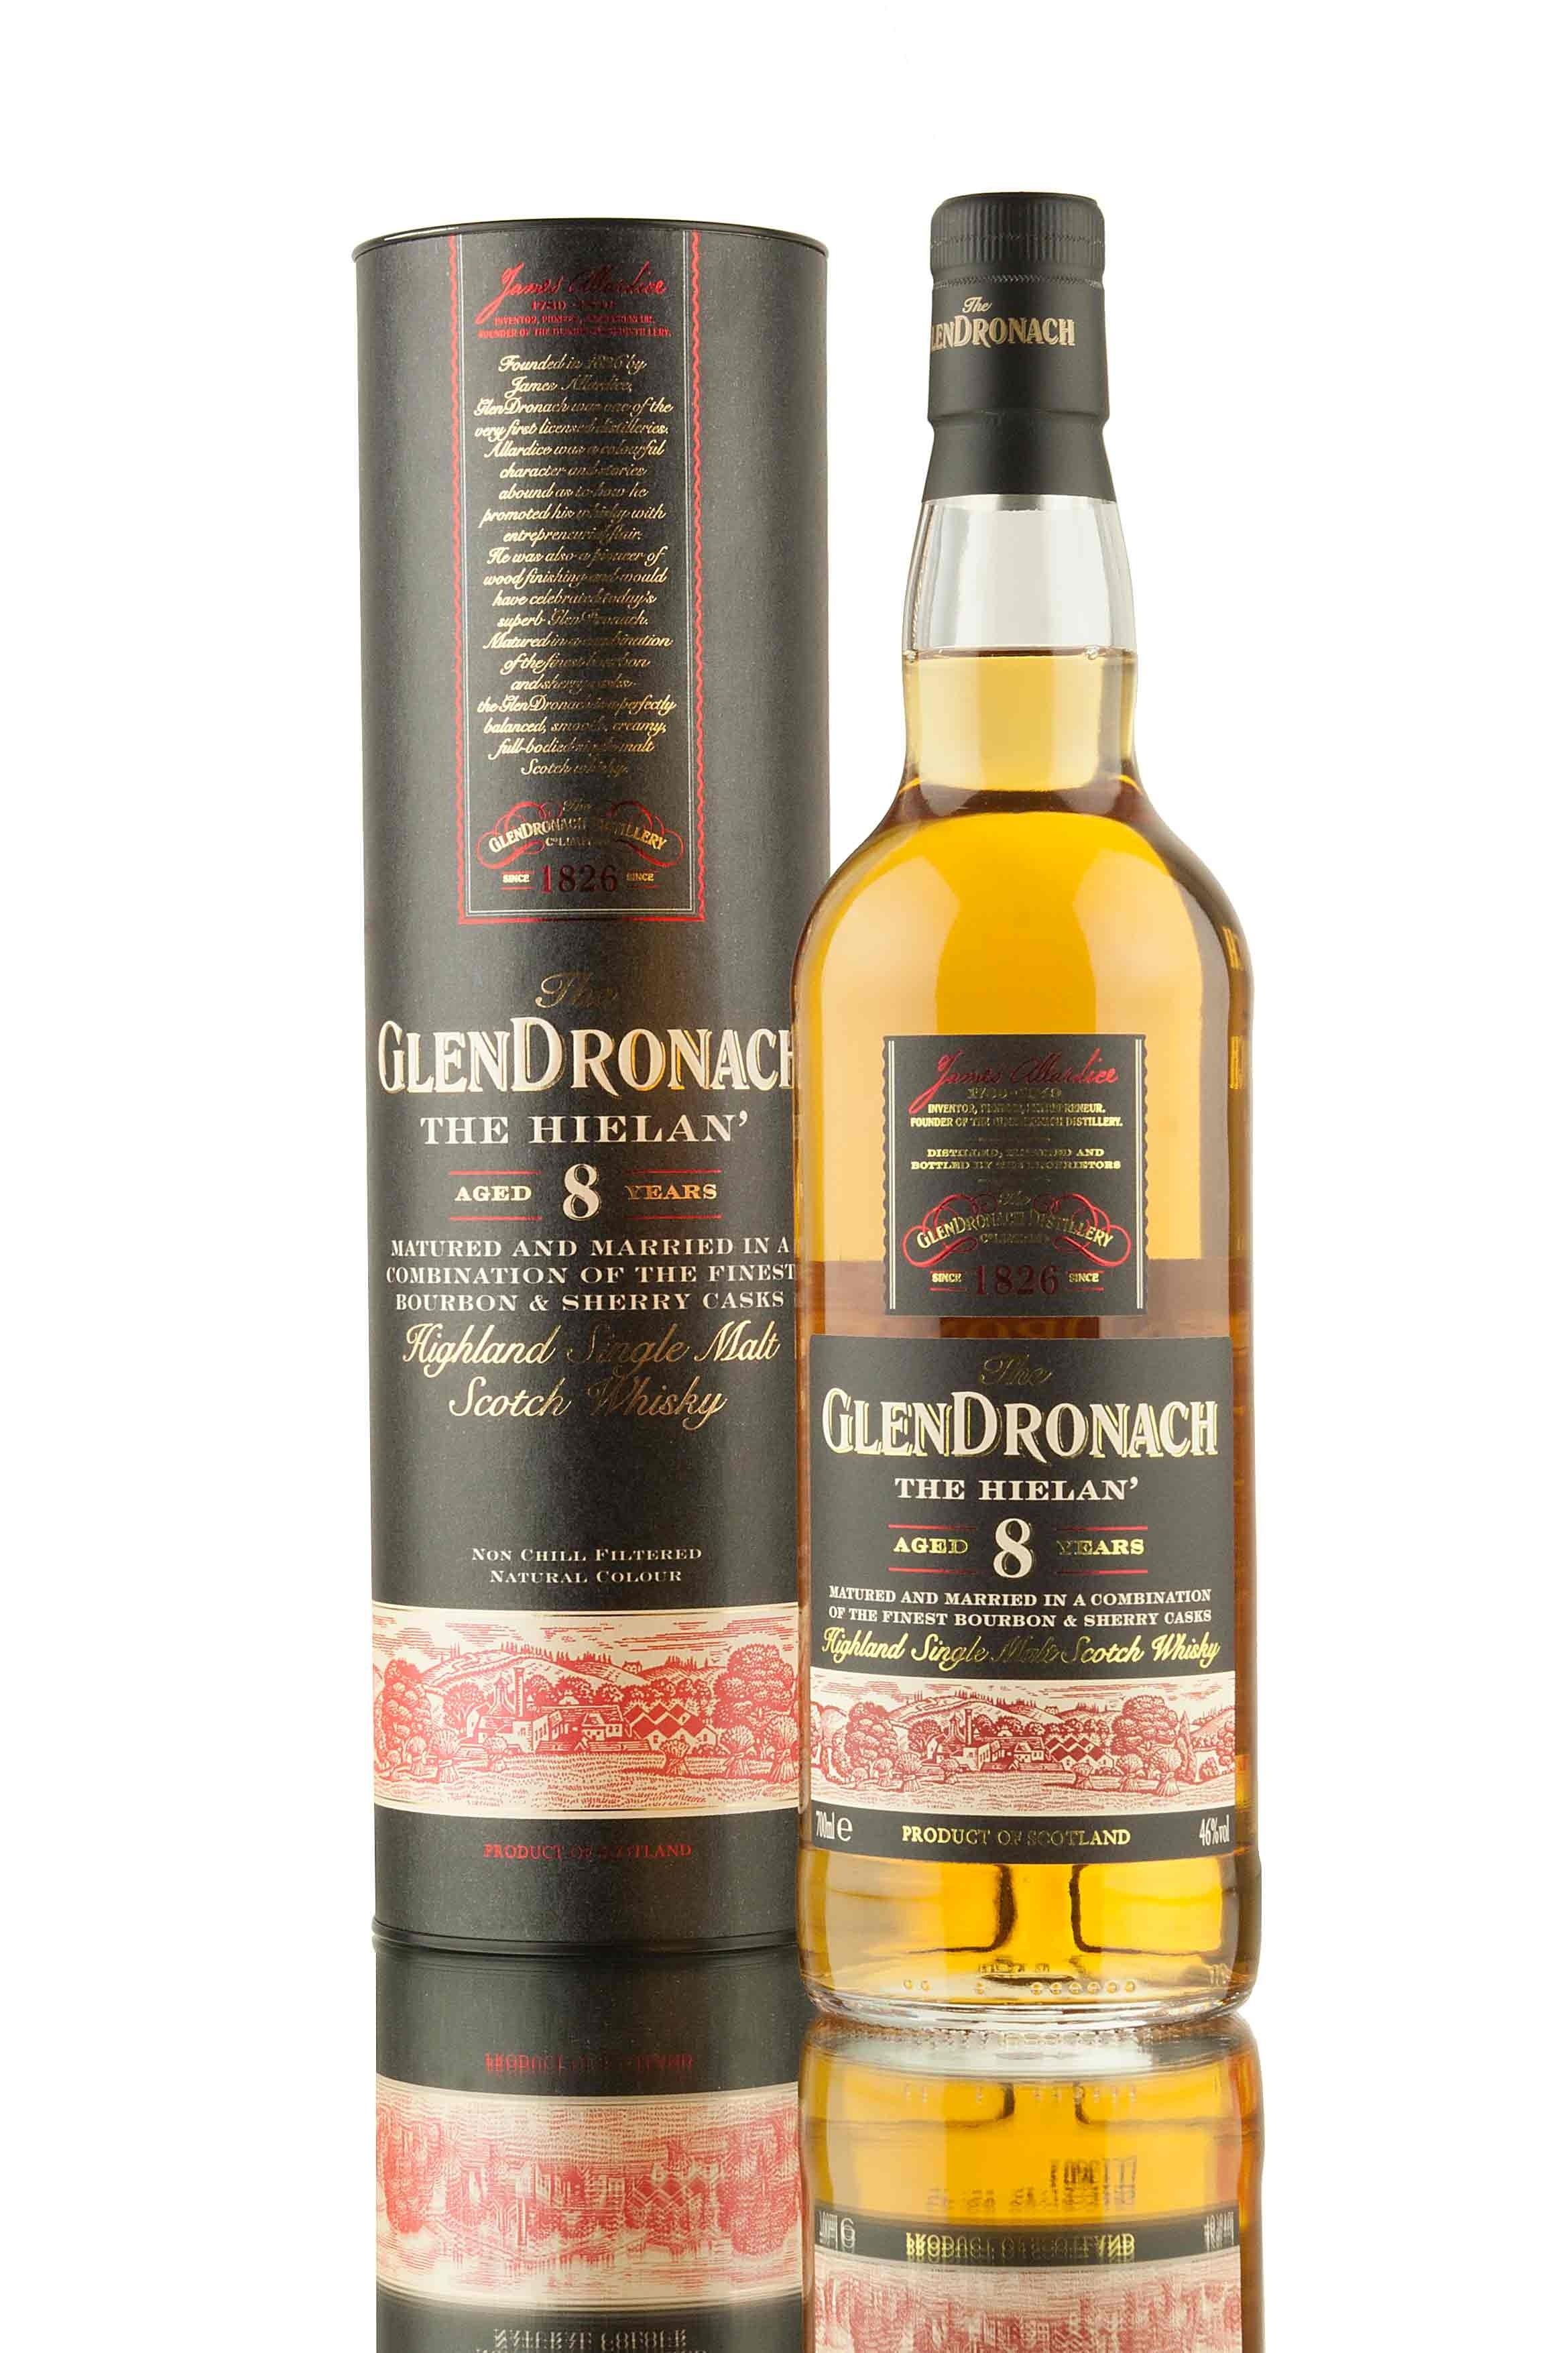 Glendronach The Hielan 8 Year Old